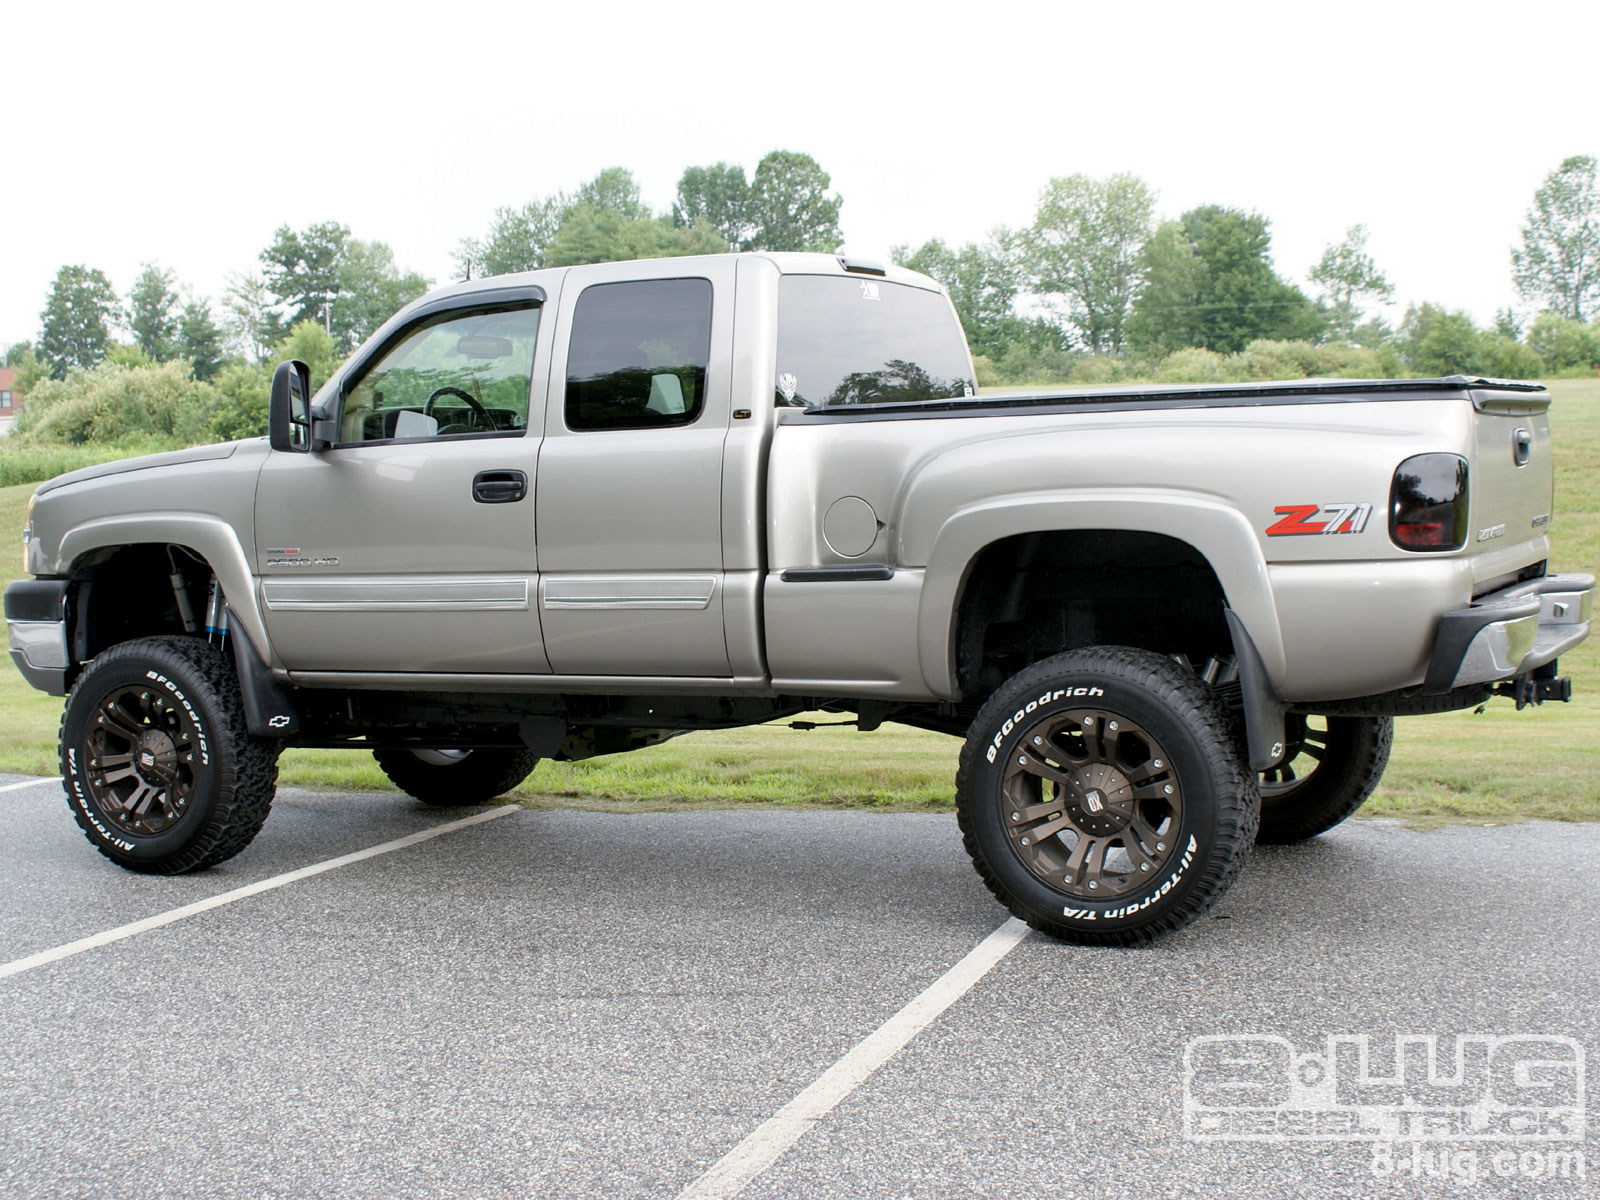 Lifted Chevy Truck Wallpaper 2004 chevrolet silverado 1600x1200